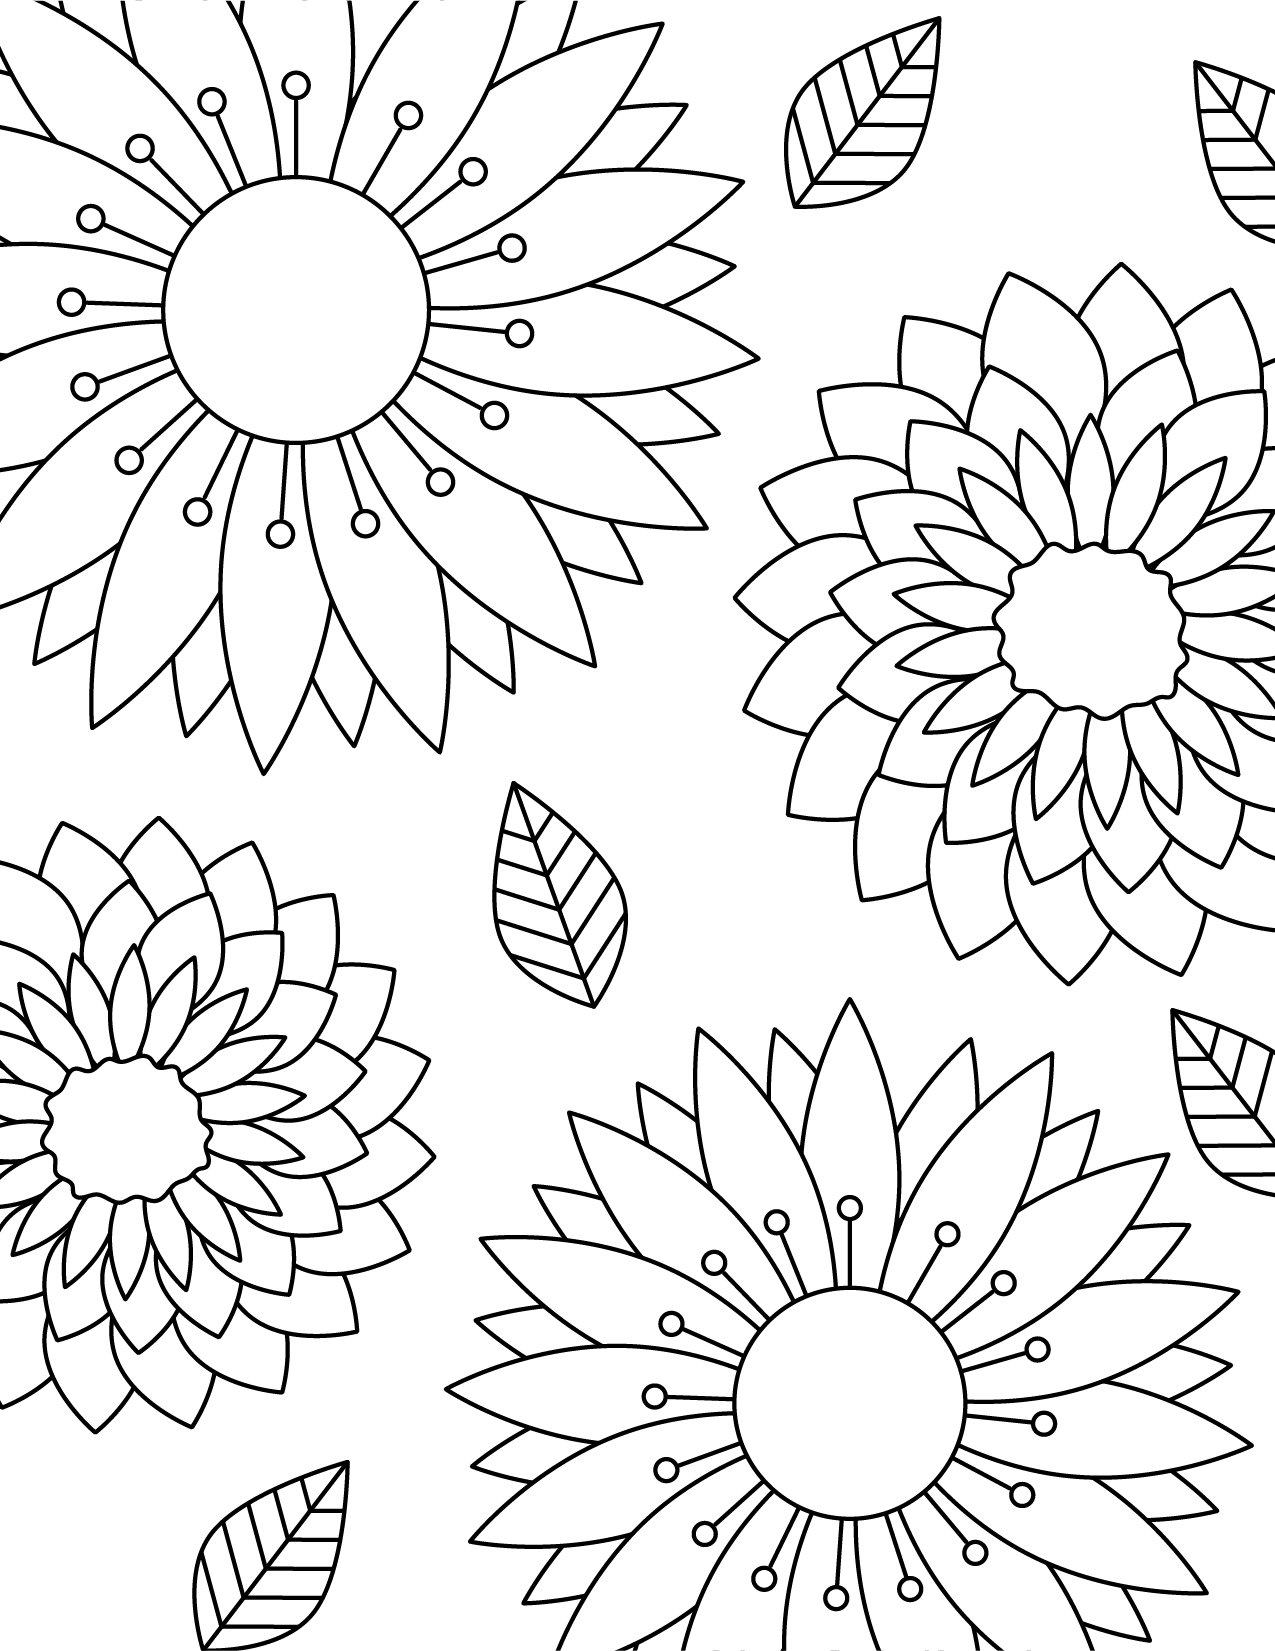 teenage colouring sheets 10 free coloring pages for teens parents colouring sheets teenage